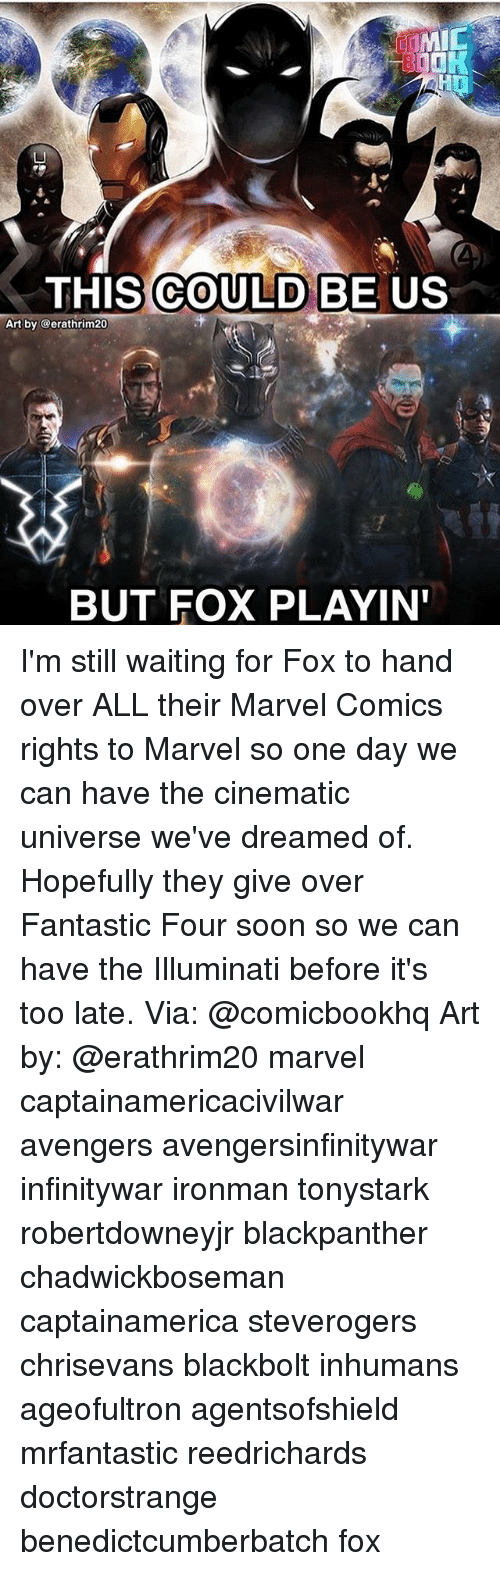 Fantastic Four, Illuminati, and Marvel Comics: MIC  LT  THIS COULD BE US  Art by @erathrim20  BUT FOX PLAYIN I'm still waiting for Fox to hand over ALL their Marvel Comics rights to Marvel so one day we can have the cinematic universe we've dreamed of. Hopefully they give over Fantastic Four soon so we can have the Illuminati before it's too late. Via: @comicbookhq Art by: @erathrim20 marvel captainamericacivilwar avengers avengersinfinitywar infinitywar ironman tonystark robertdowneyjr blackpanther chadwickboseman captainamerica steverogers chrisevans blackbolt inhumans ageofultron agentsofshield mrfantastic reedrichards doctorstrange benedictcumberbatch fox